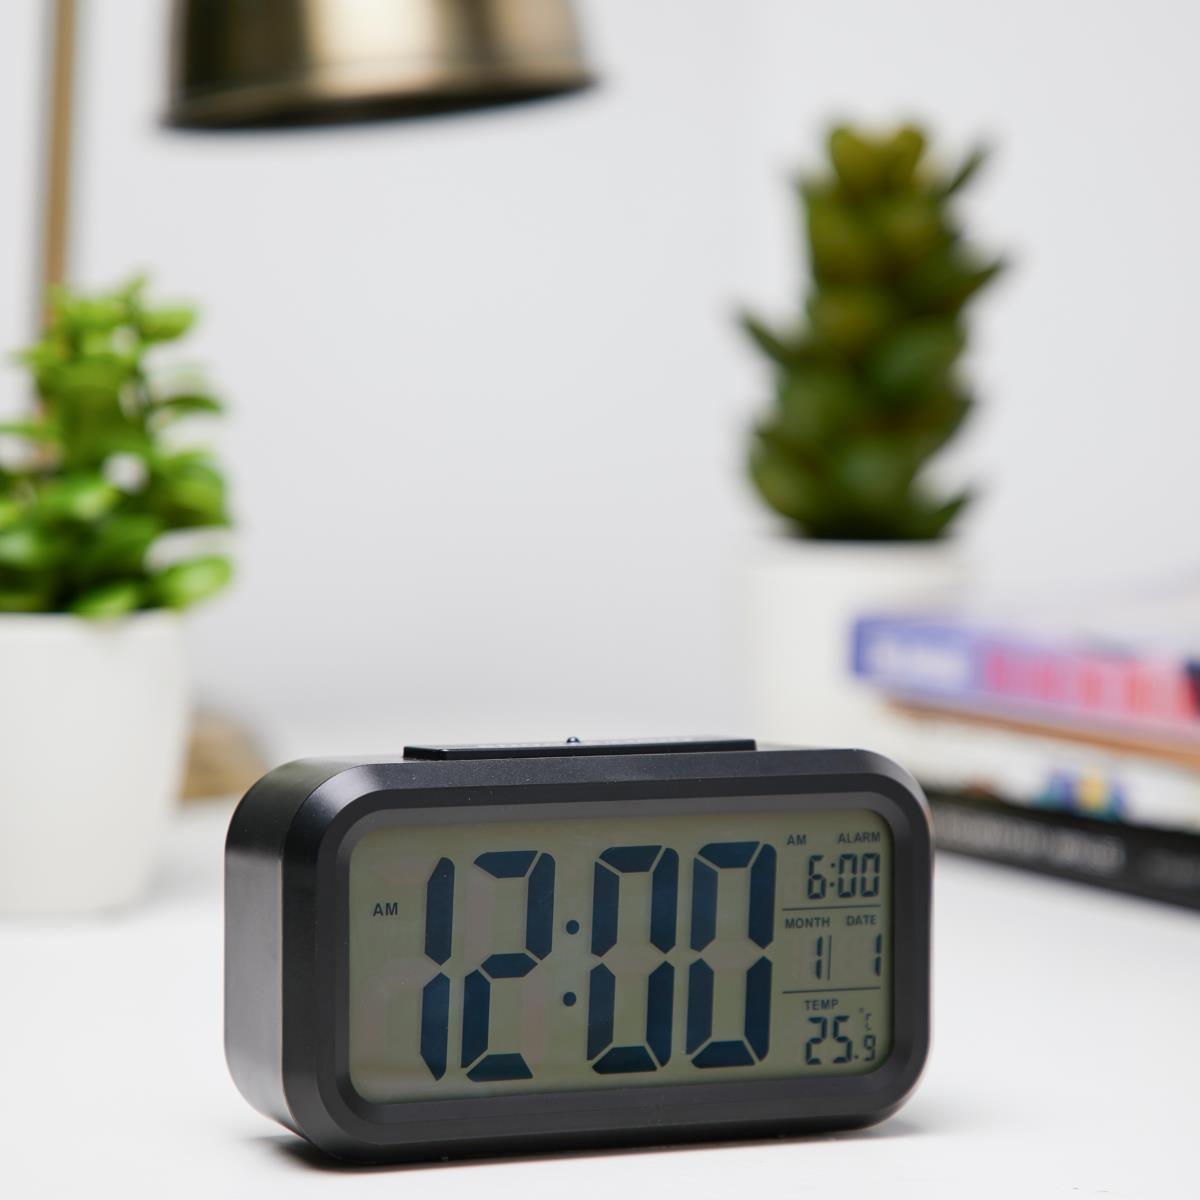 Checkmate Chapman Multifunction Digital Alarm Clock Black 14cm VGW 1065Black Lifestyle3